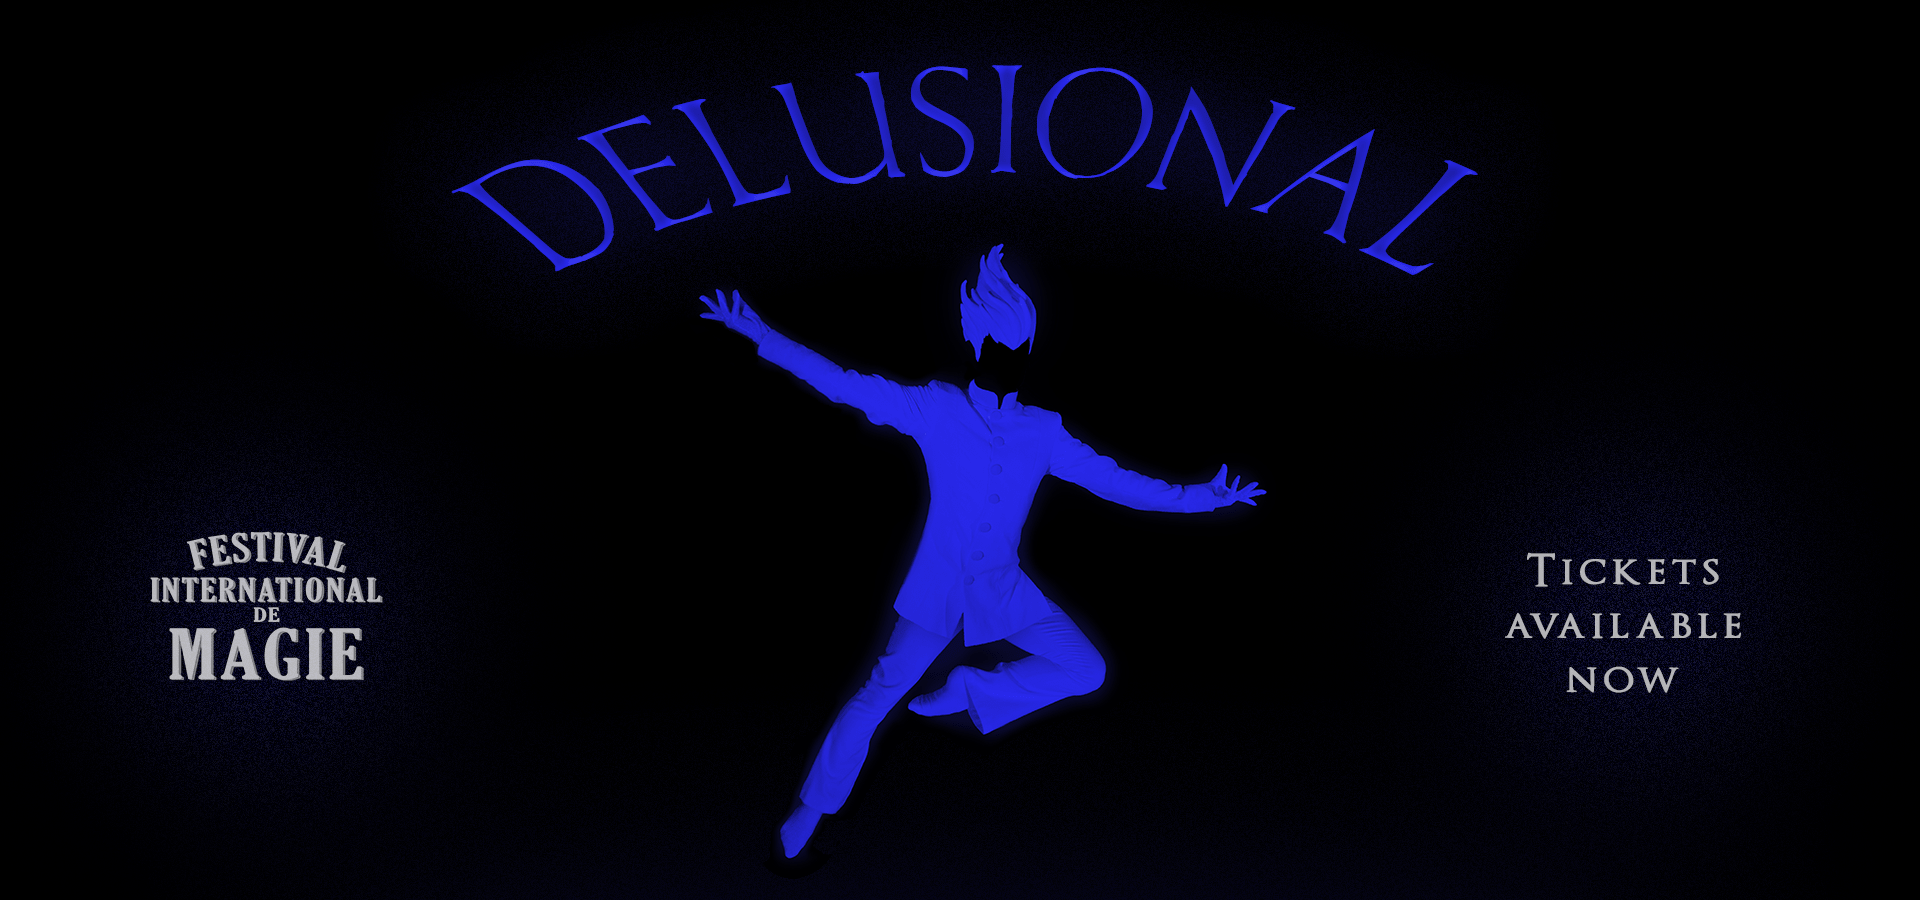 Delusional at Festival International de Magie